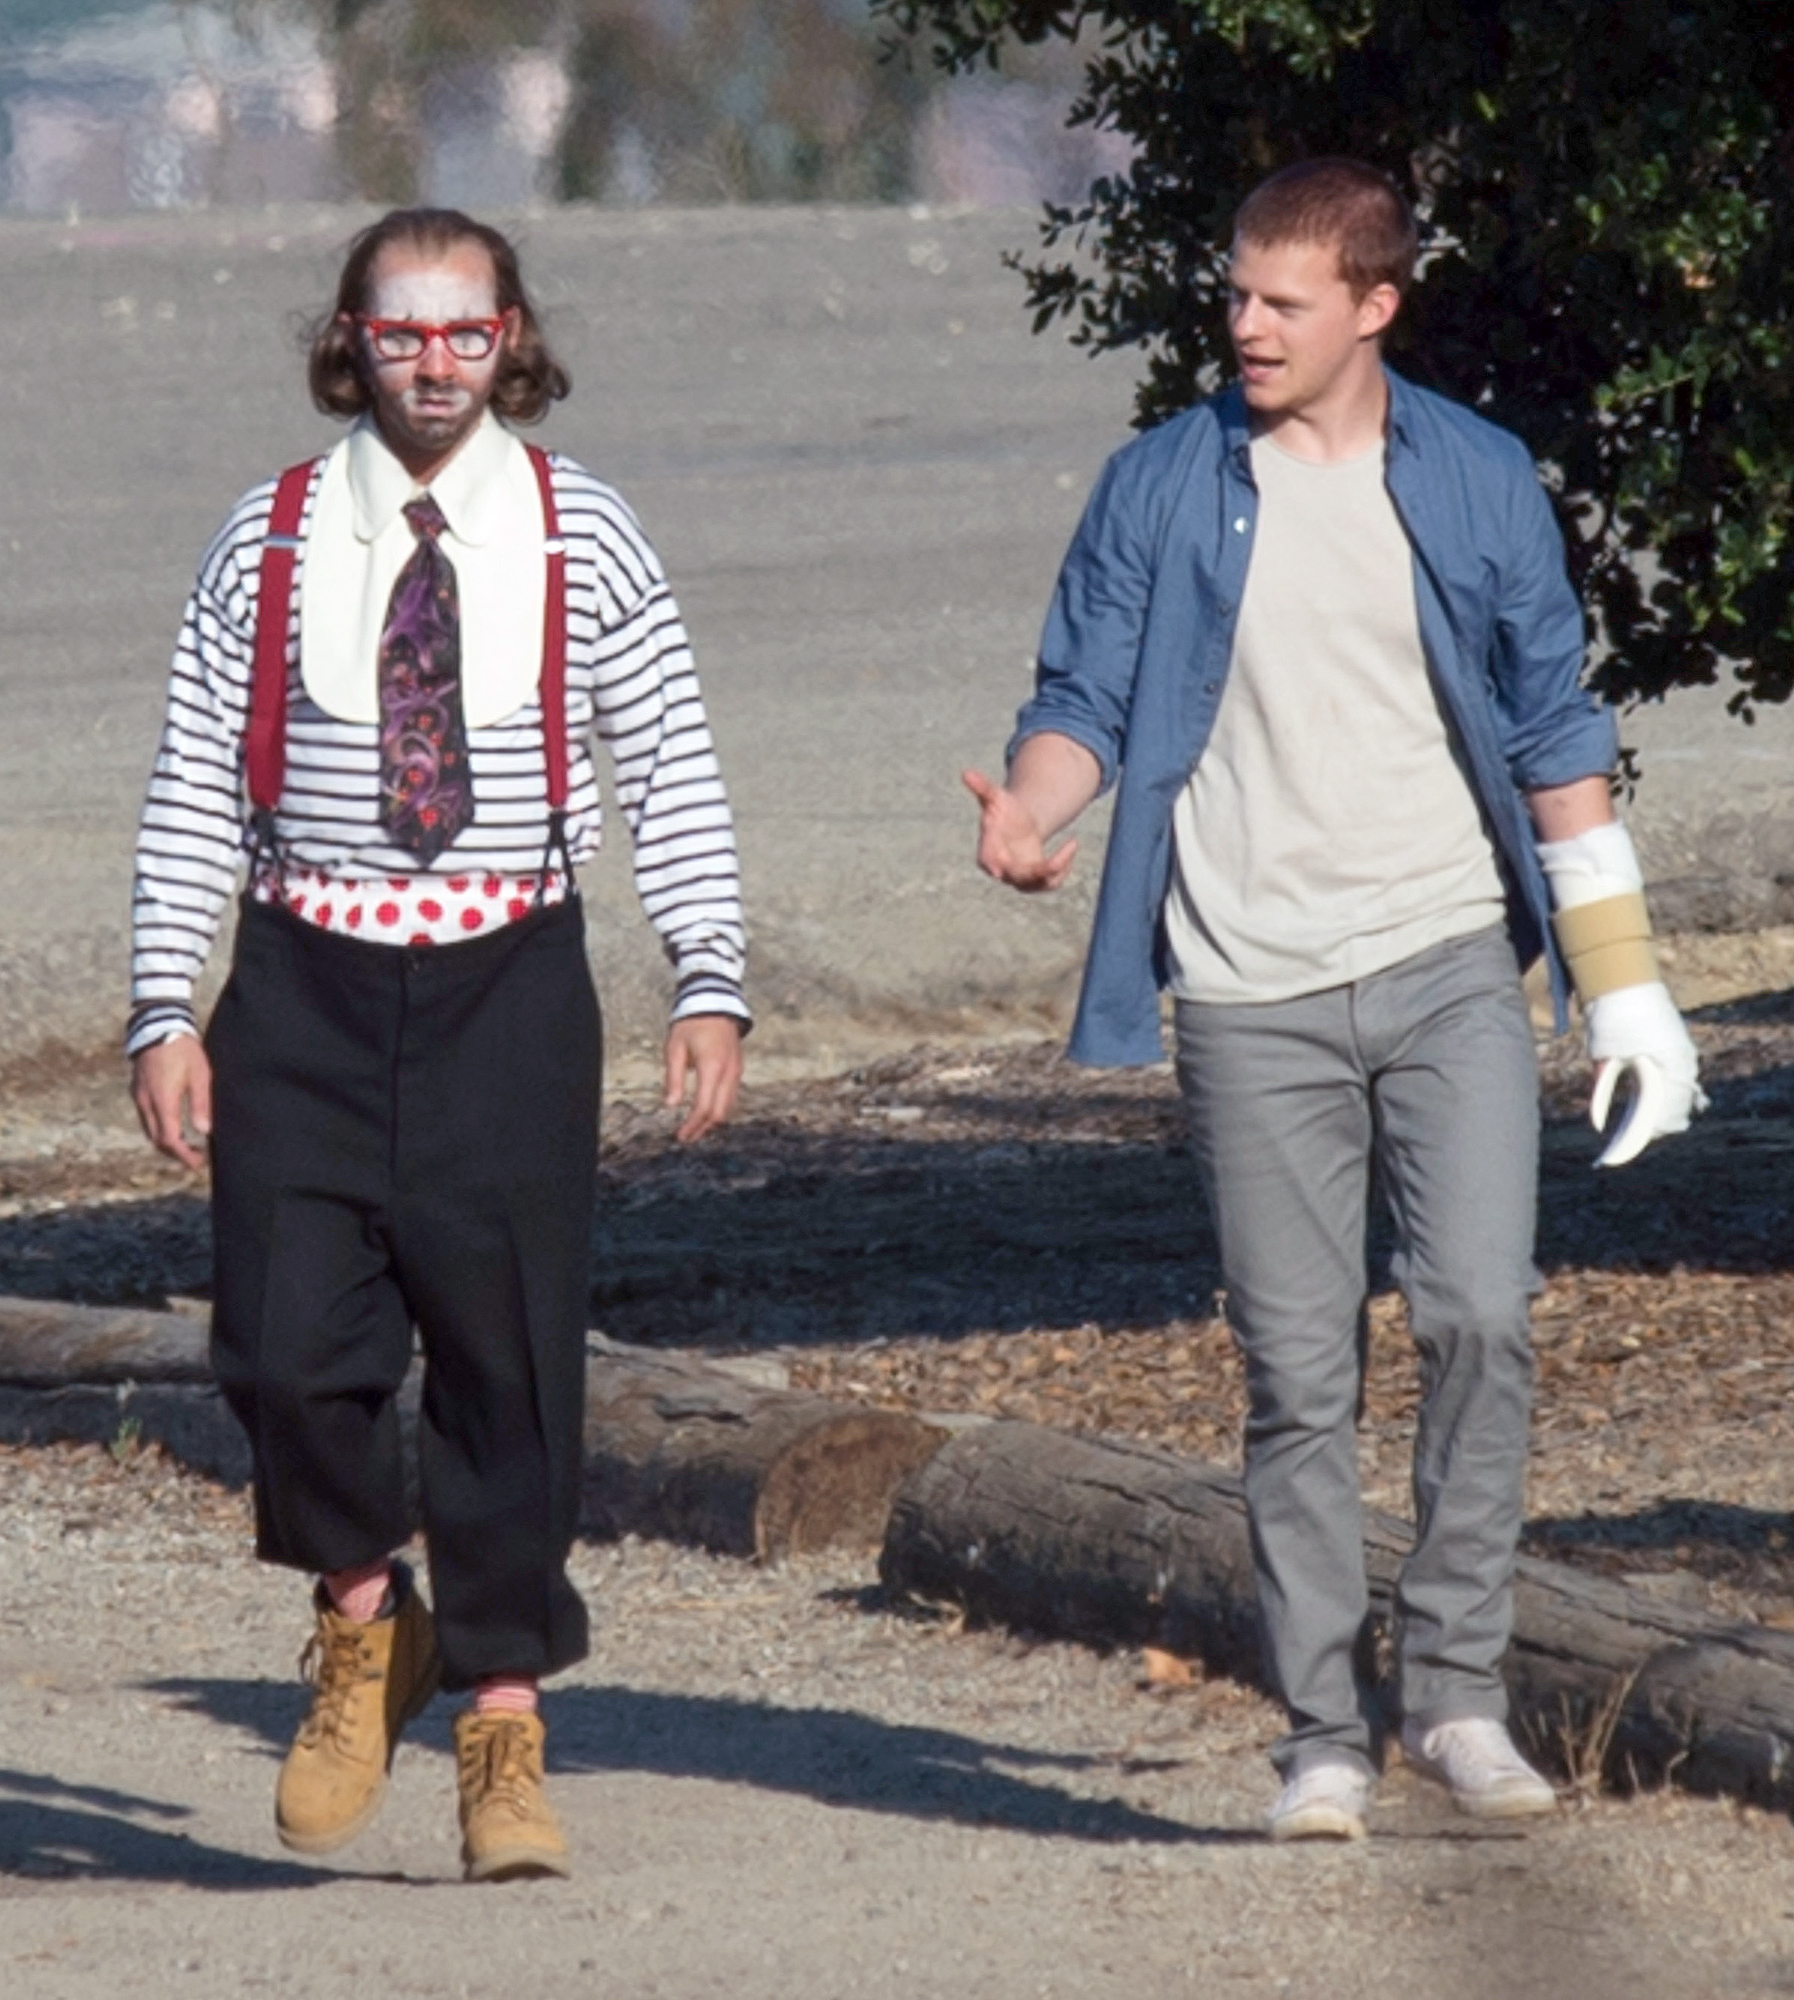 EXCLUSIVE: Shia LaBeouf and Lucas Hedges are Pictured on the set of 'Honey Boy' in Los Angeles.